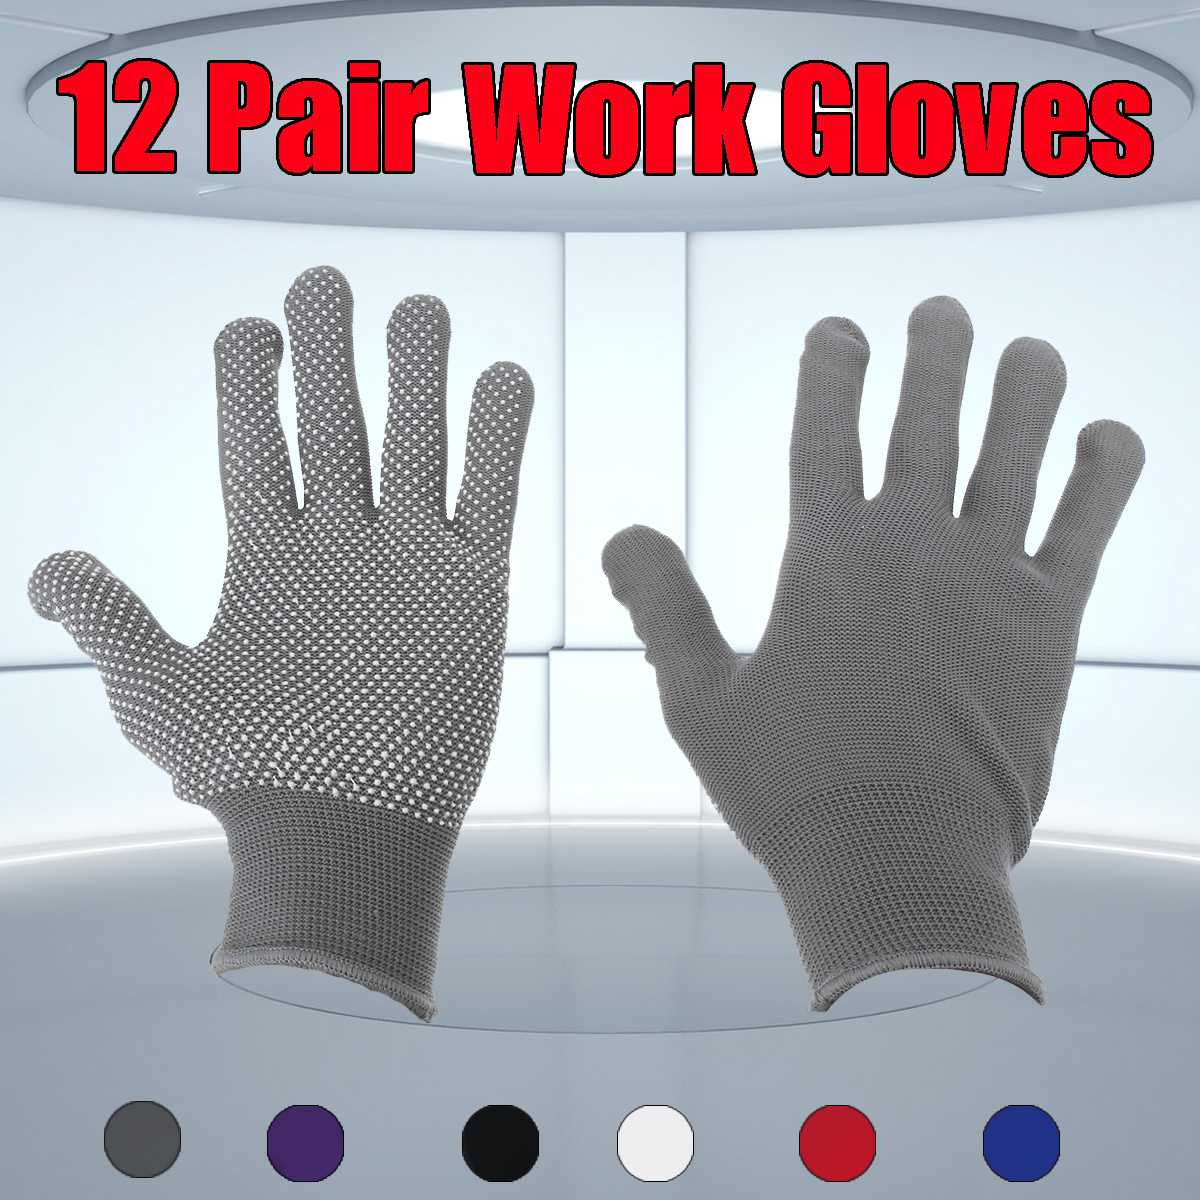 12 Pairs Workplace Safety Gloves Hand Protector Full Finger Non-slip Labor Insurance Working Gloves Men Women Motorcycle Gloves12 Pairs Workplace Safety Gloves Hand Protector Full Finger Non-slip Labor Insurance Working Gloves Men Women Motorcycle Gloves